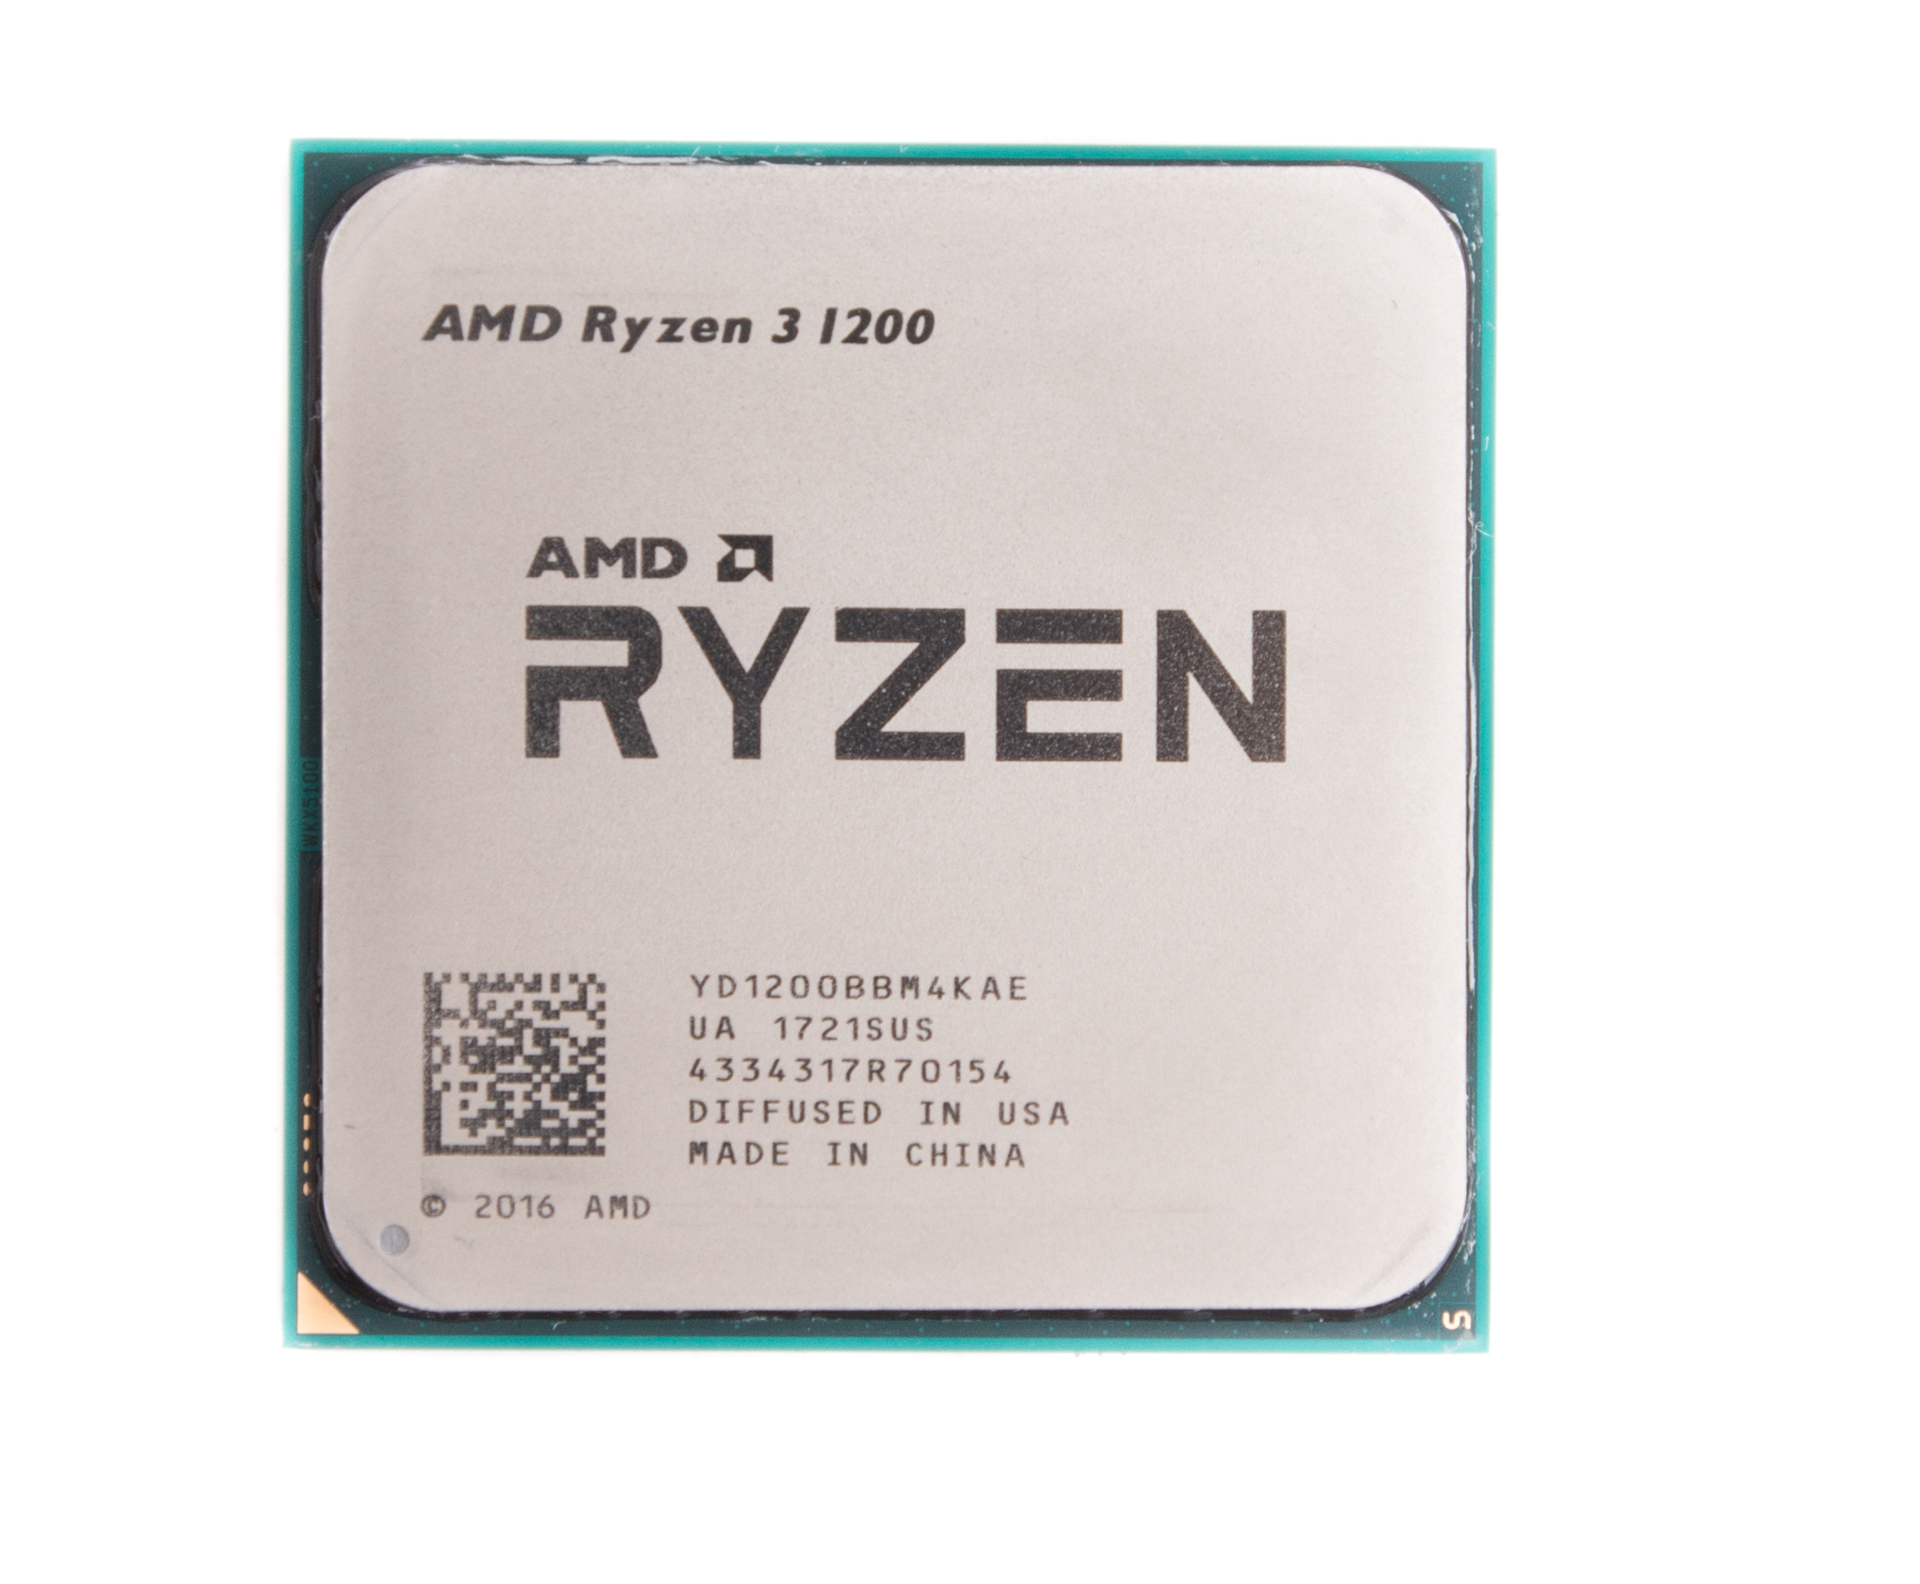 It's been a long road since March this year and the initial launch of Ryzen, but AMD has made a lot of headway with stability and memory compatibility ...